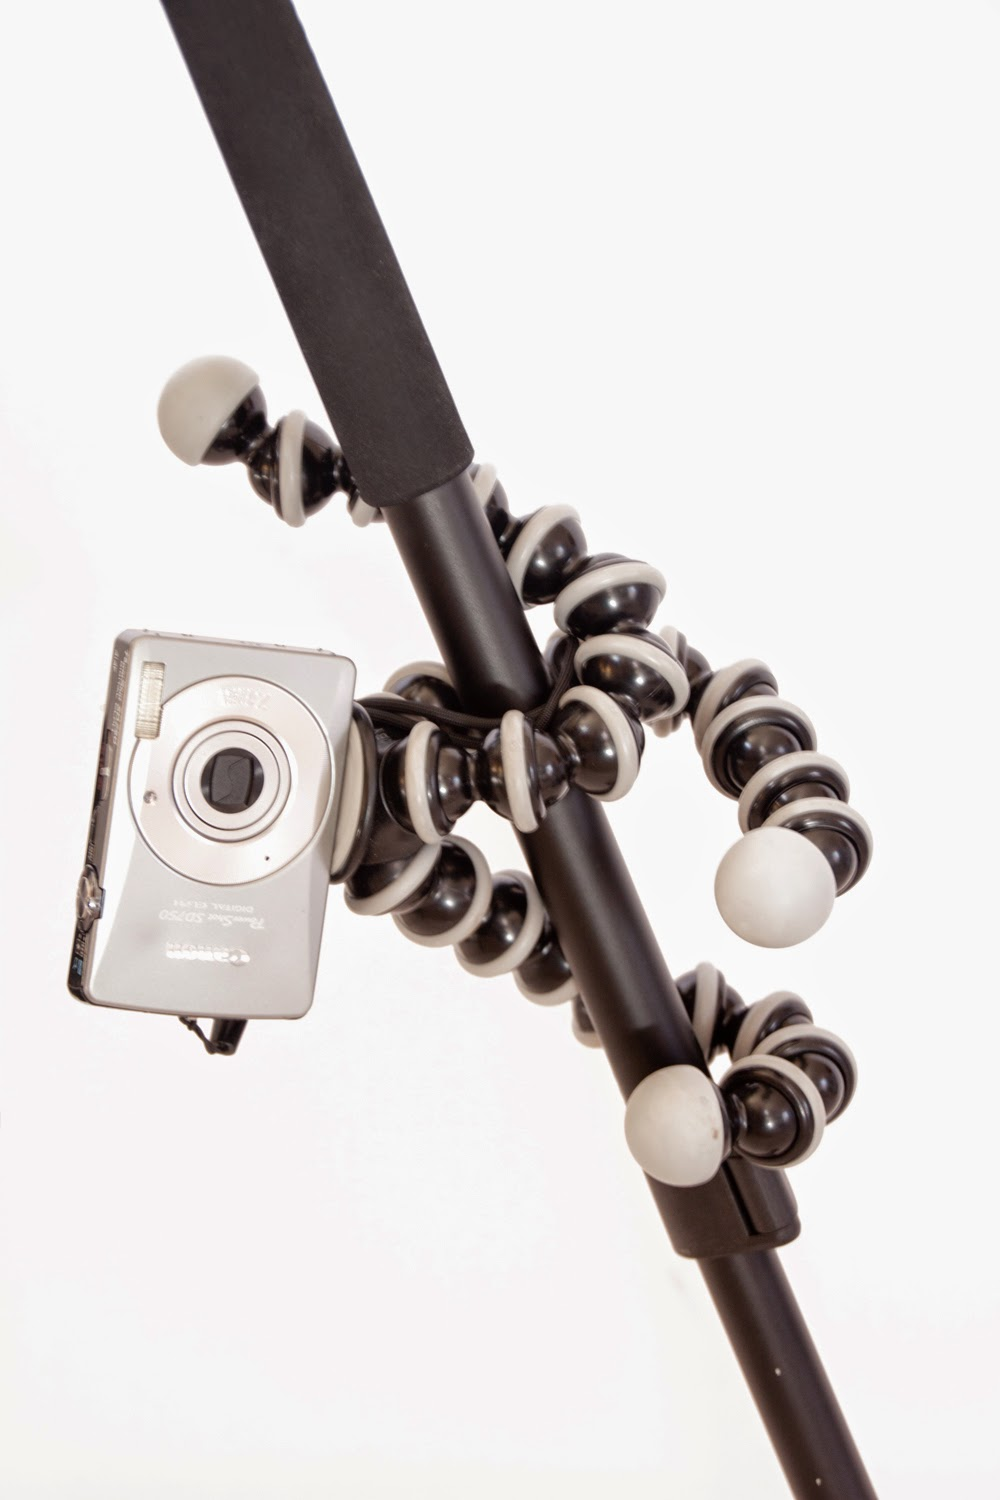 GorillaPod Tripod Review | Boost Your Photography